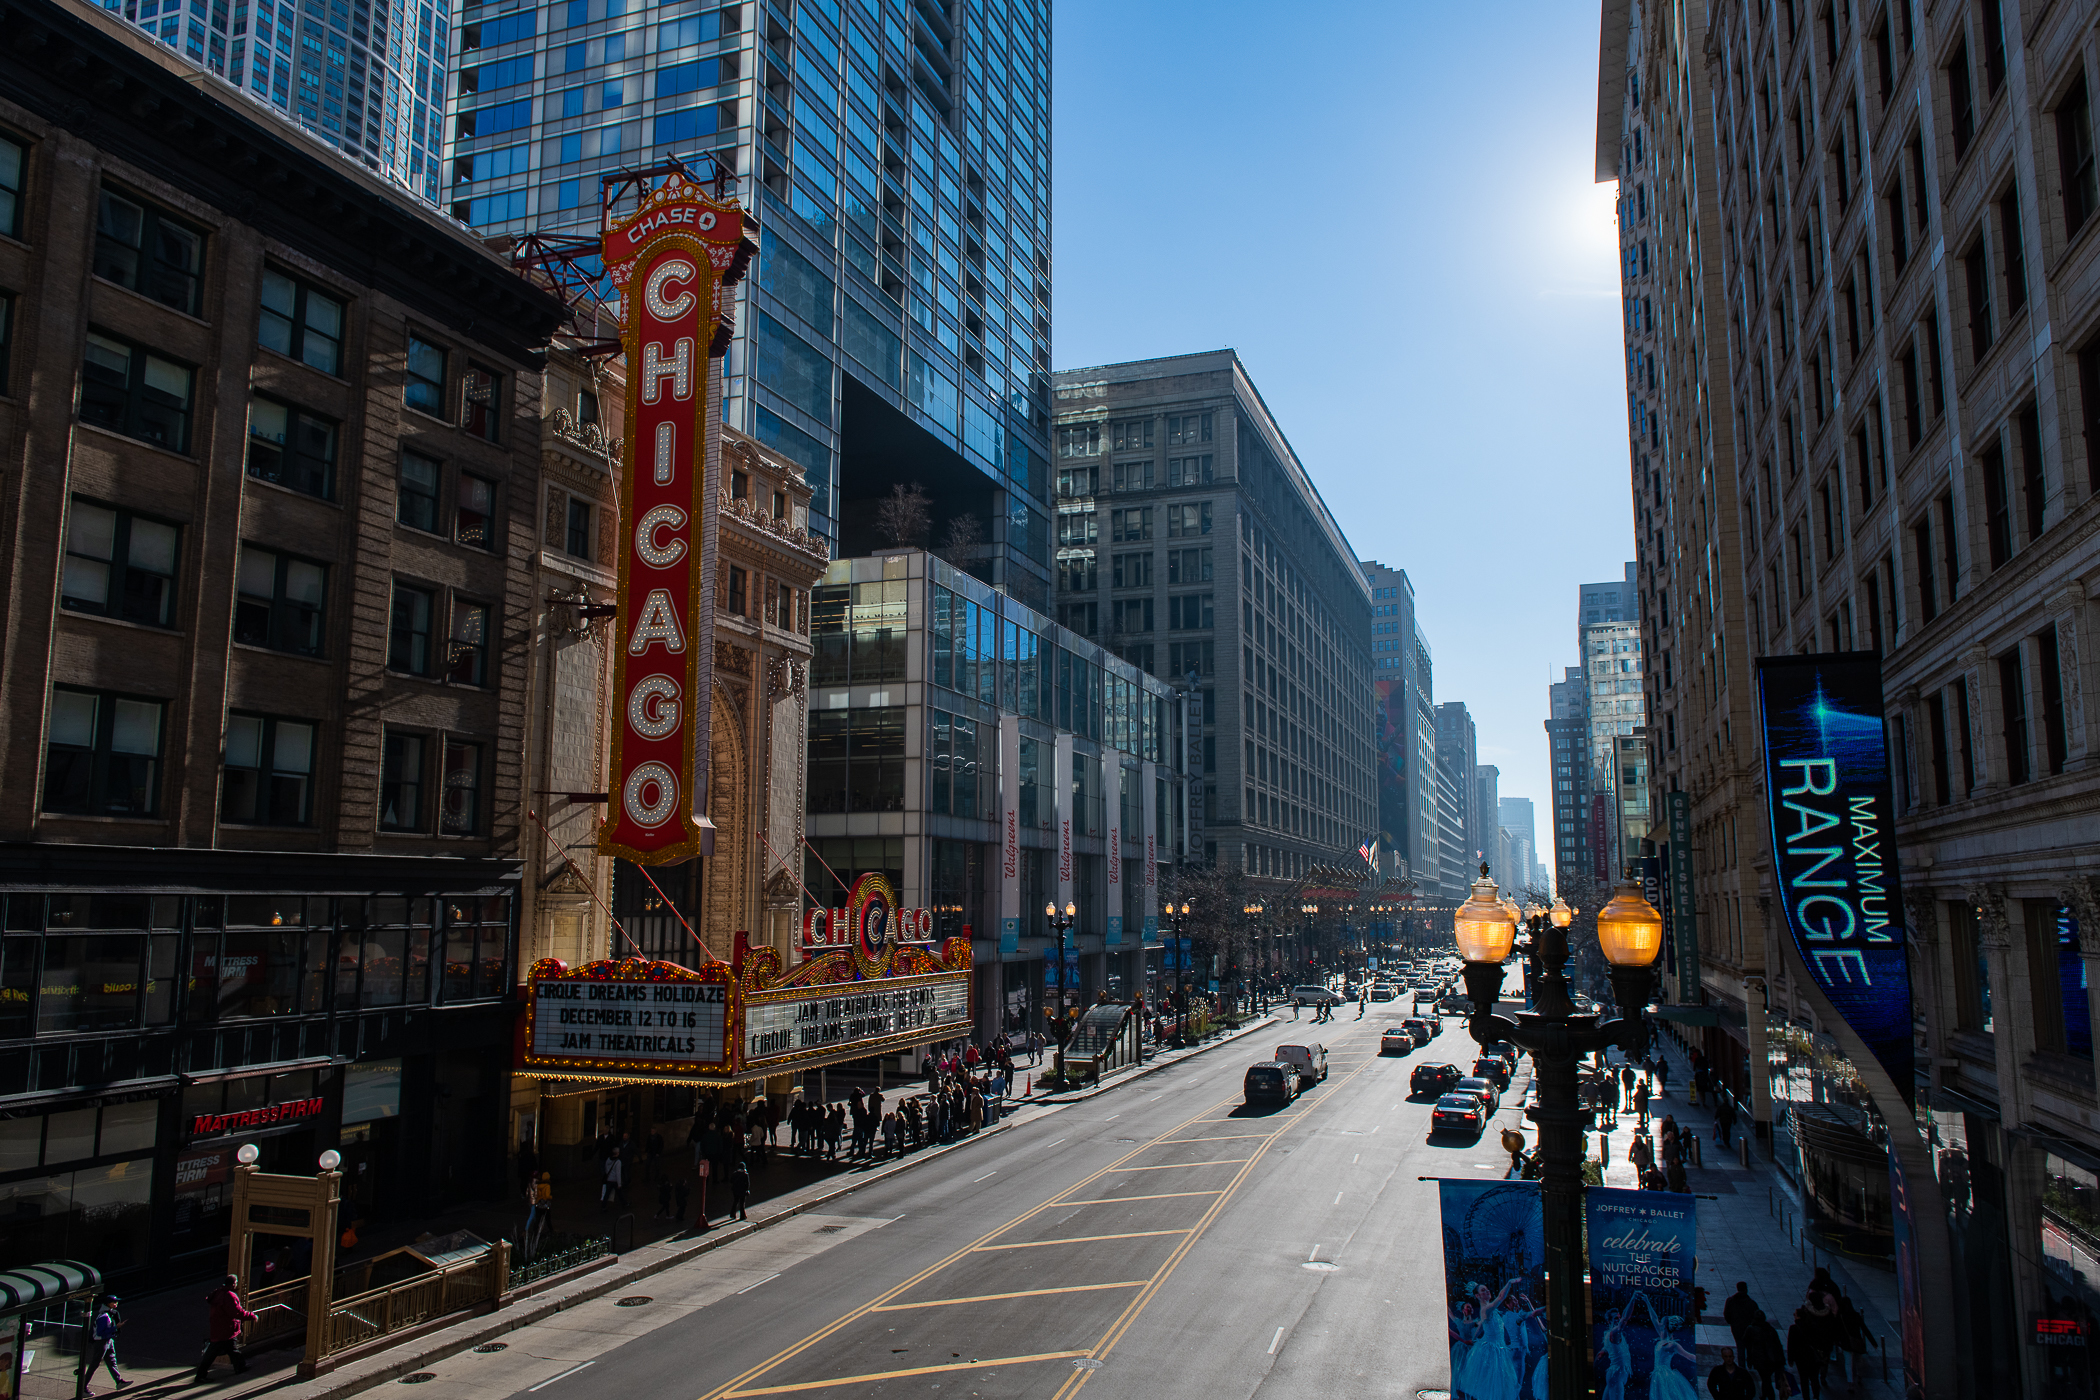 A view down State Street, one of the main streets in the Loop.